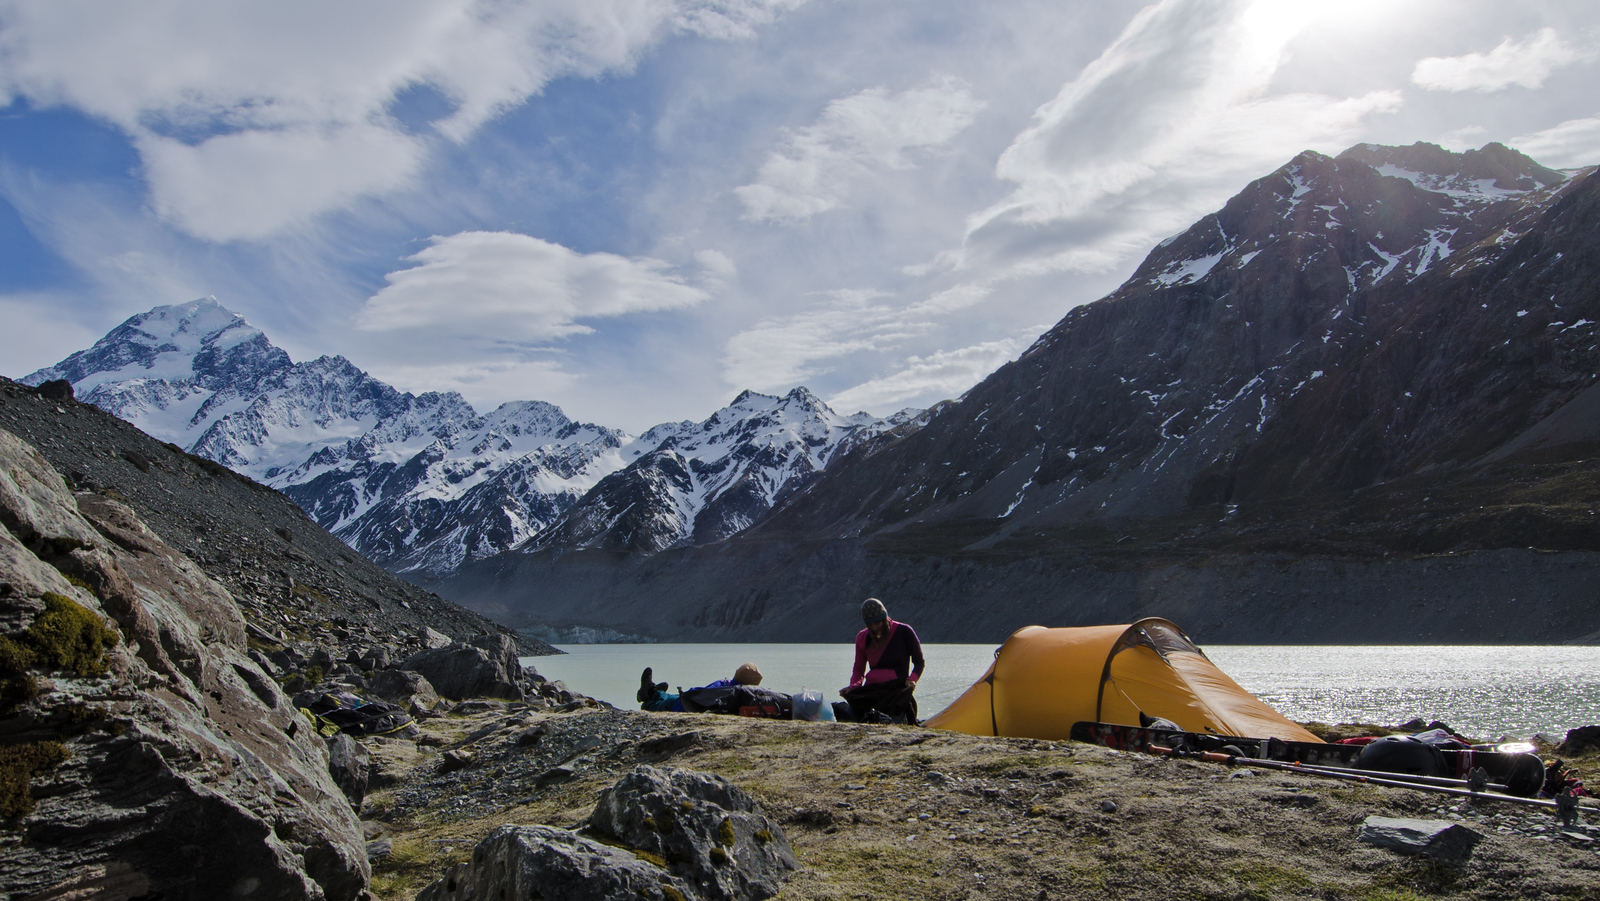 Camping beside Lake Hooker, Aoraki Mt Cook National Park